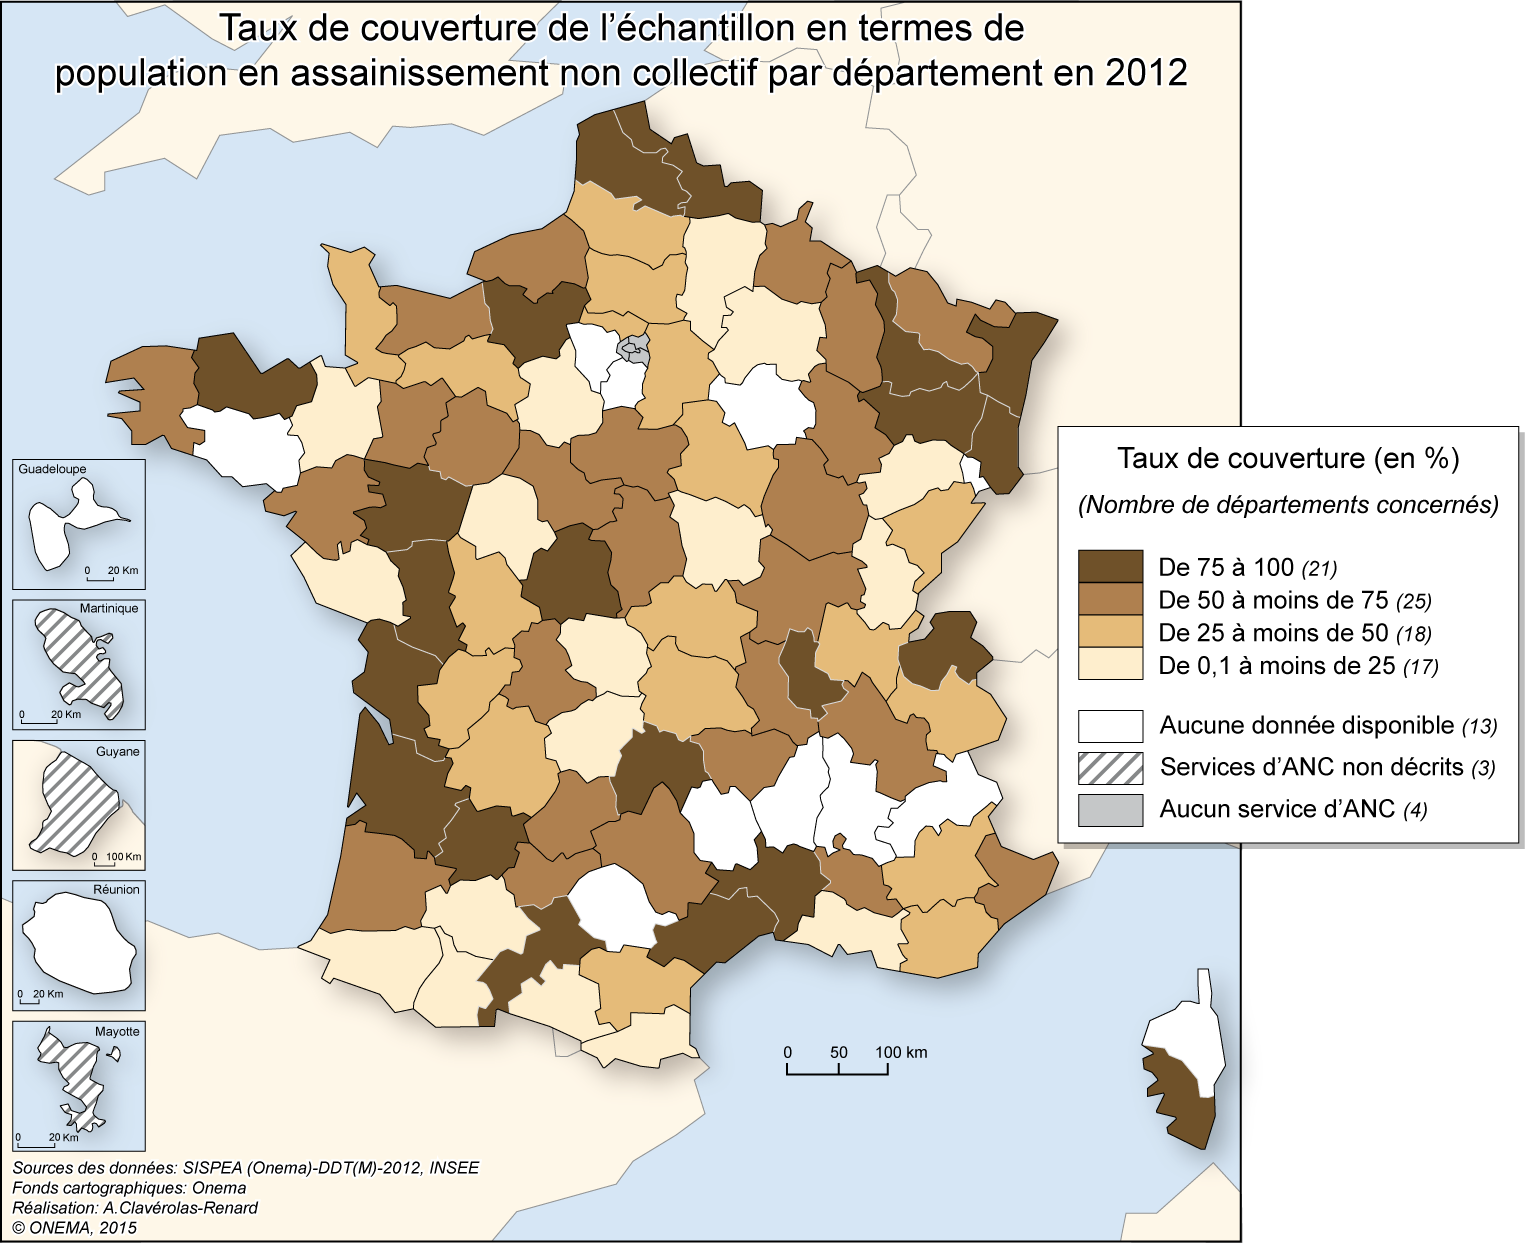 Couverture assainissement non collectif (en population)